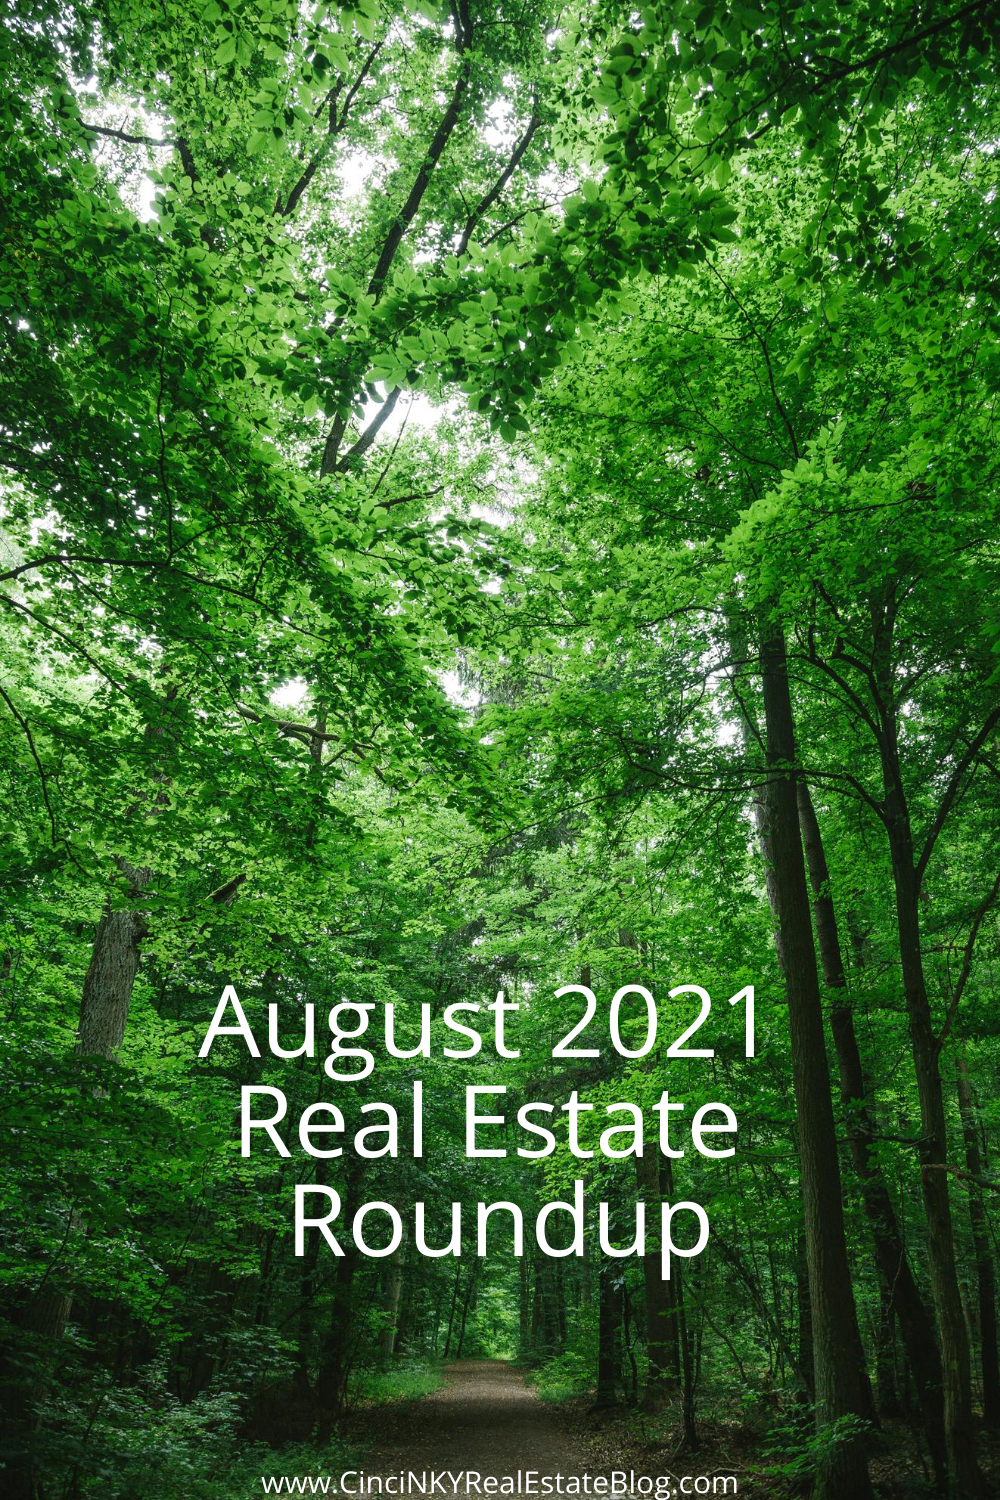 August 2021 Real Estate Roundup